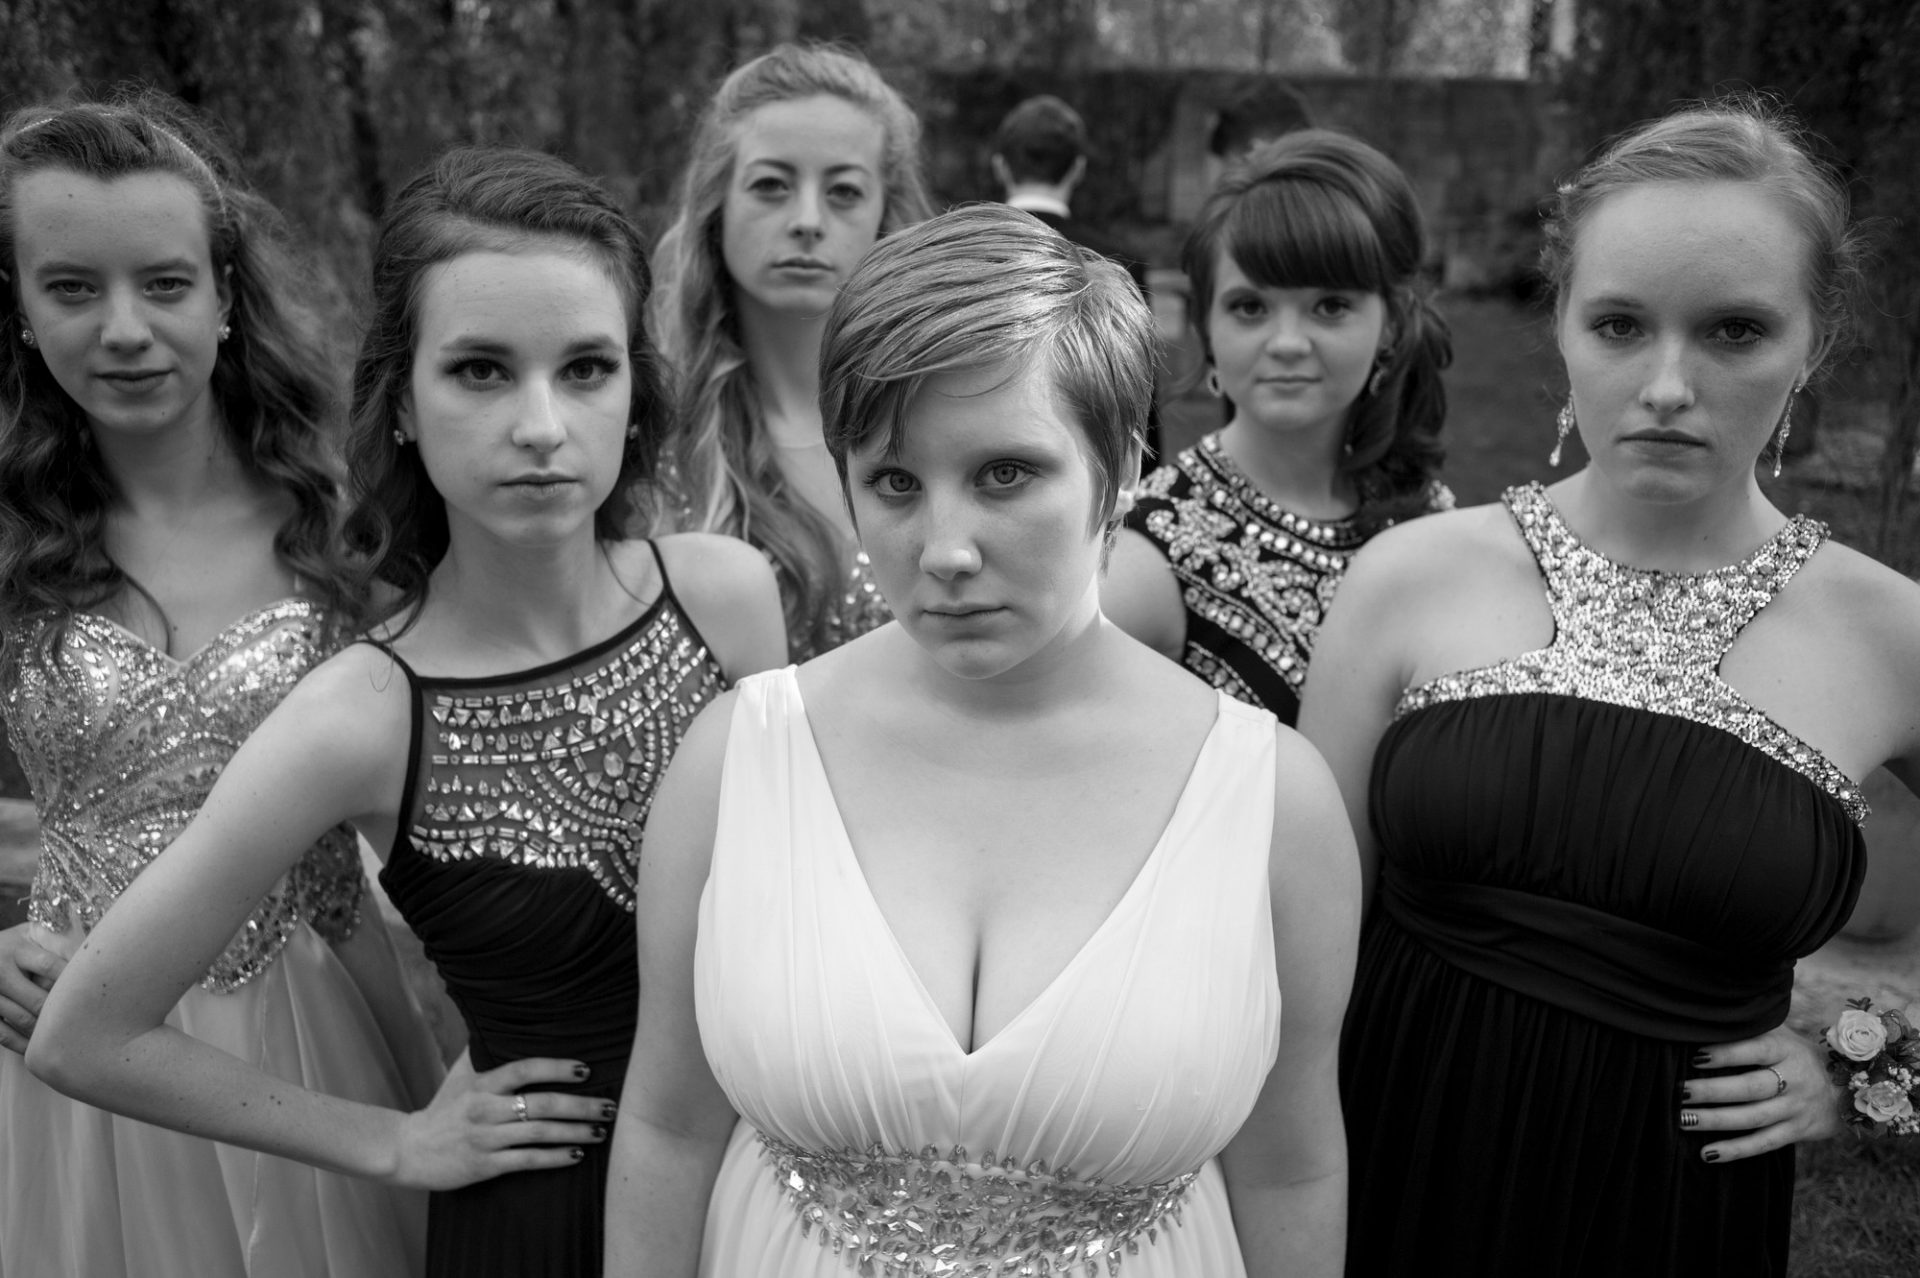 Photo: Teenagers pose for portraits before heading to their senior prom.